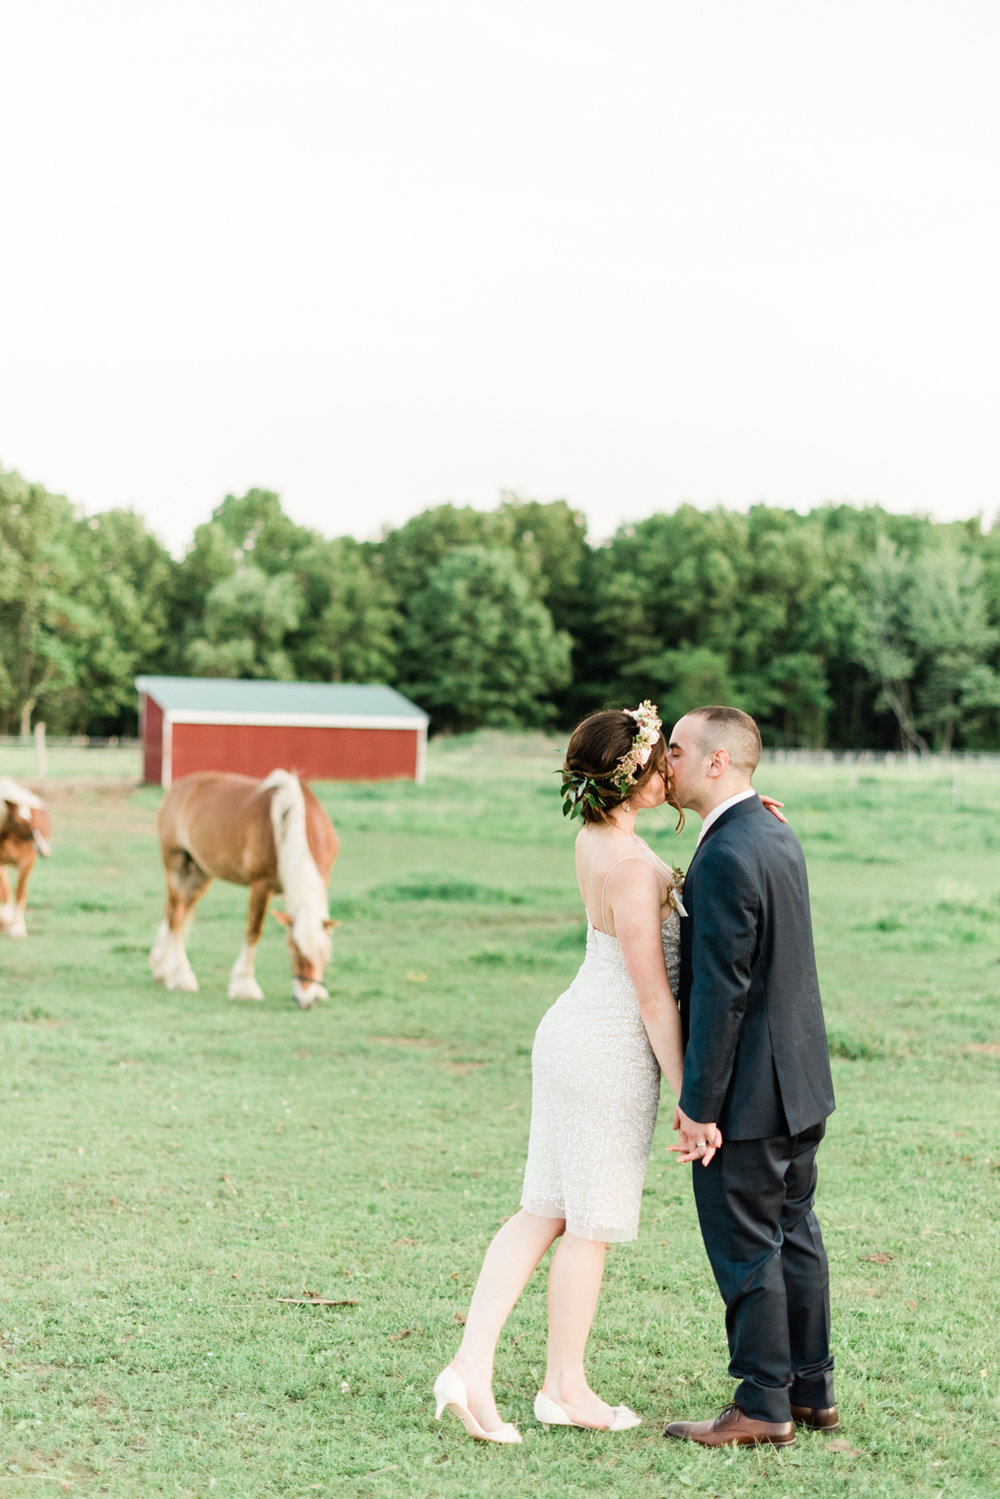 Horses and Weddings